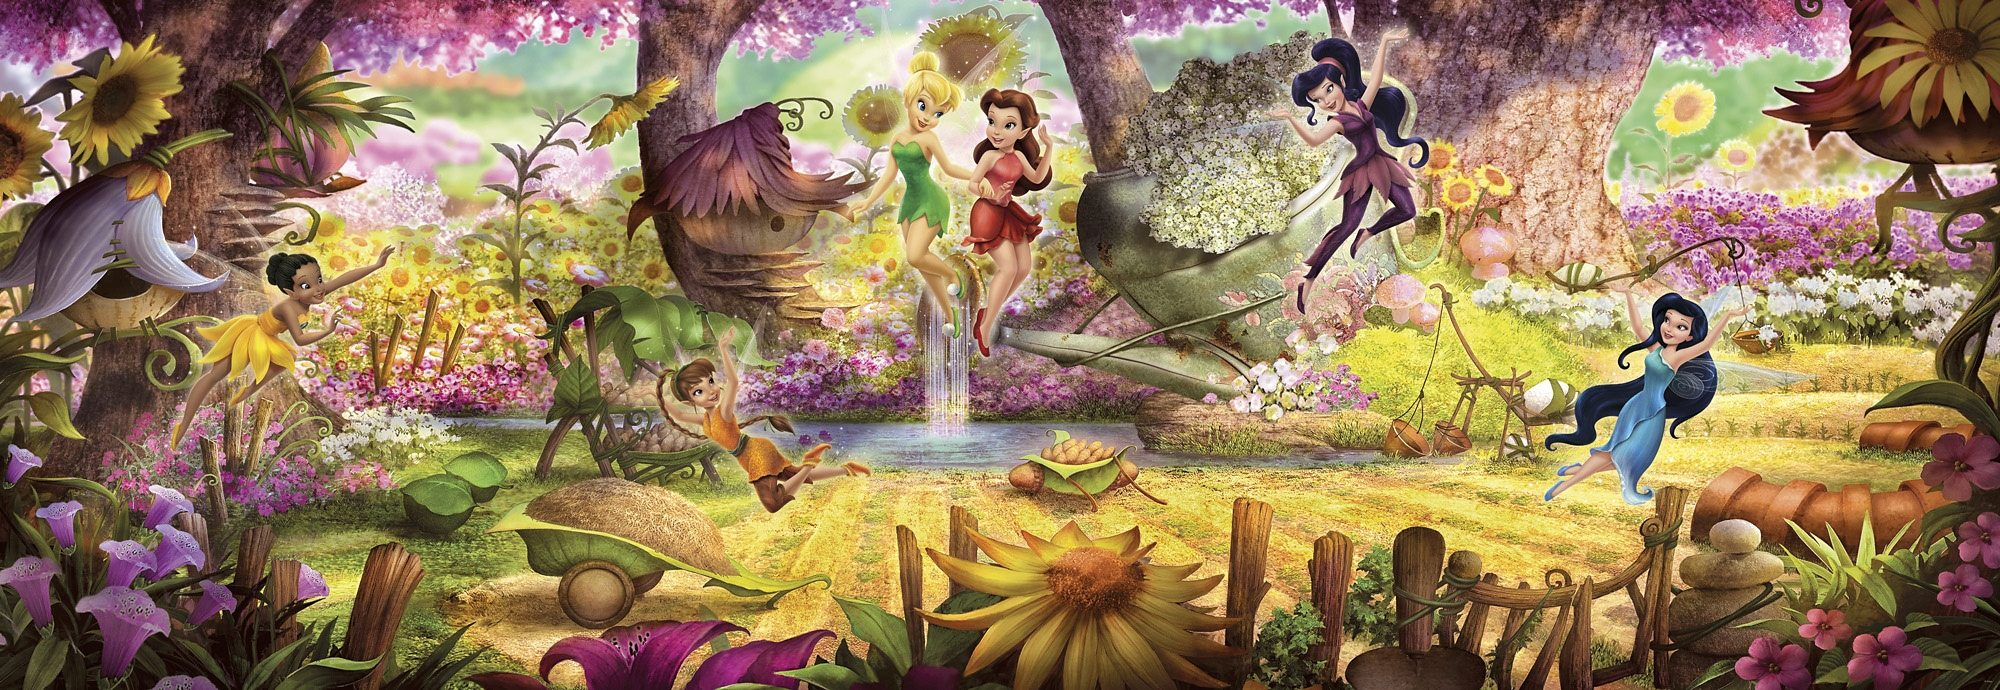 Komar, Papiertapete, »Fairies Forest«, 368/127 cm